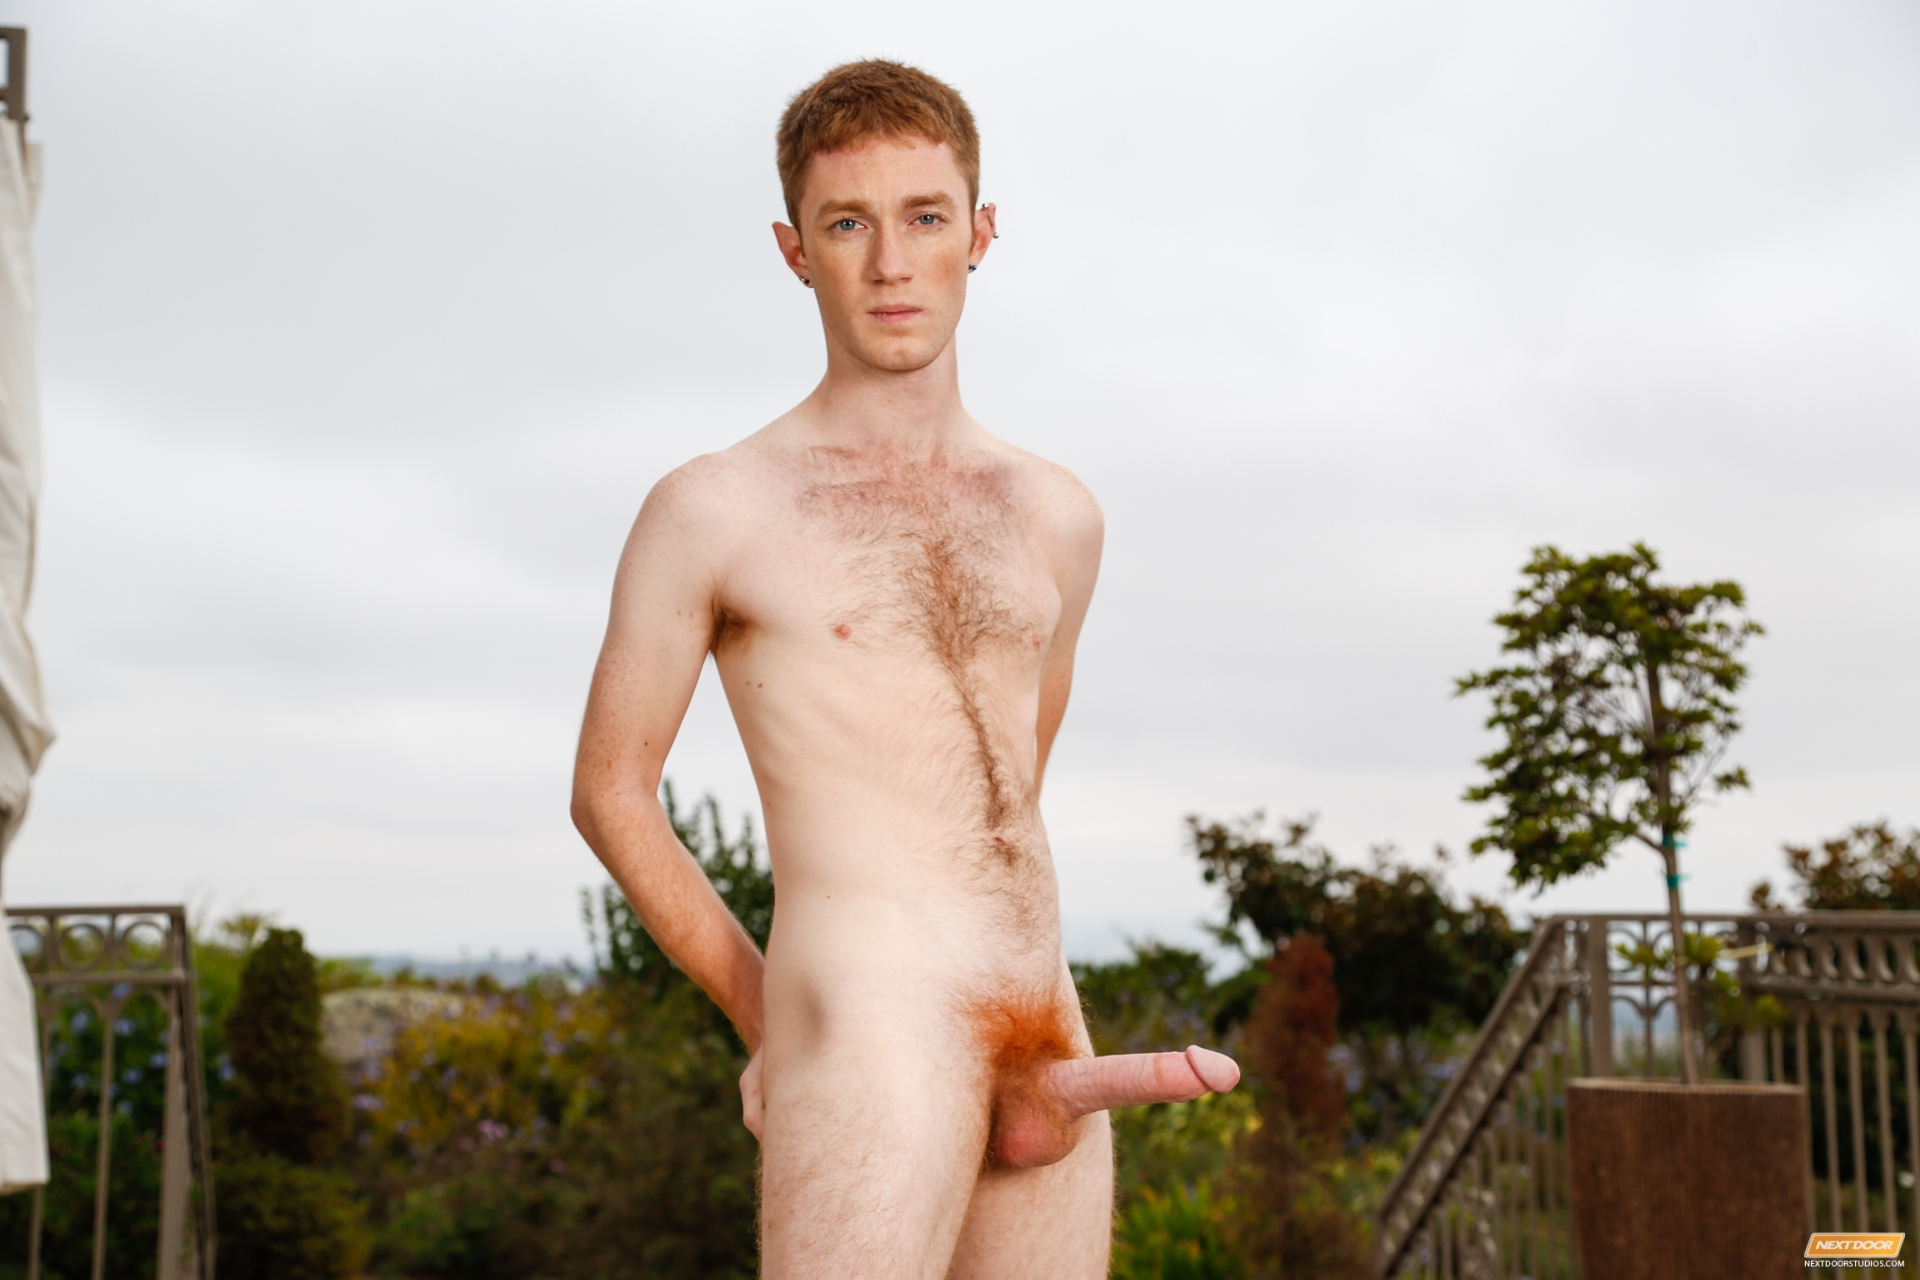 Next door twink introducing hung seamus 9